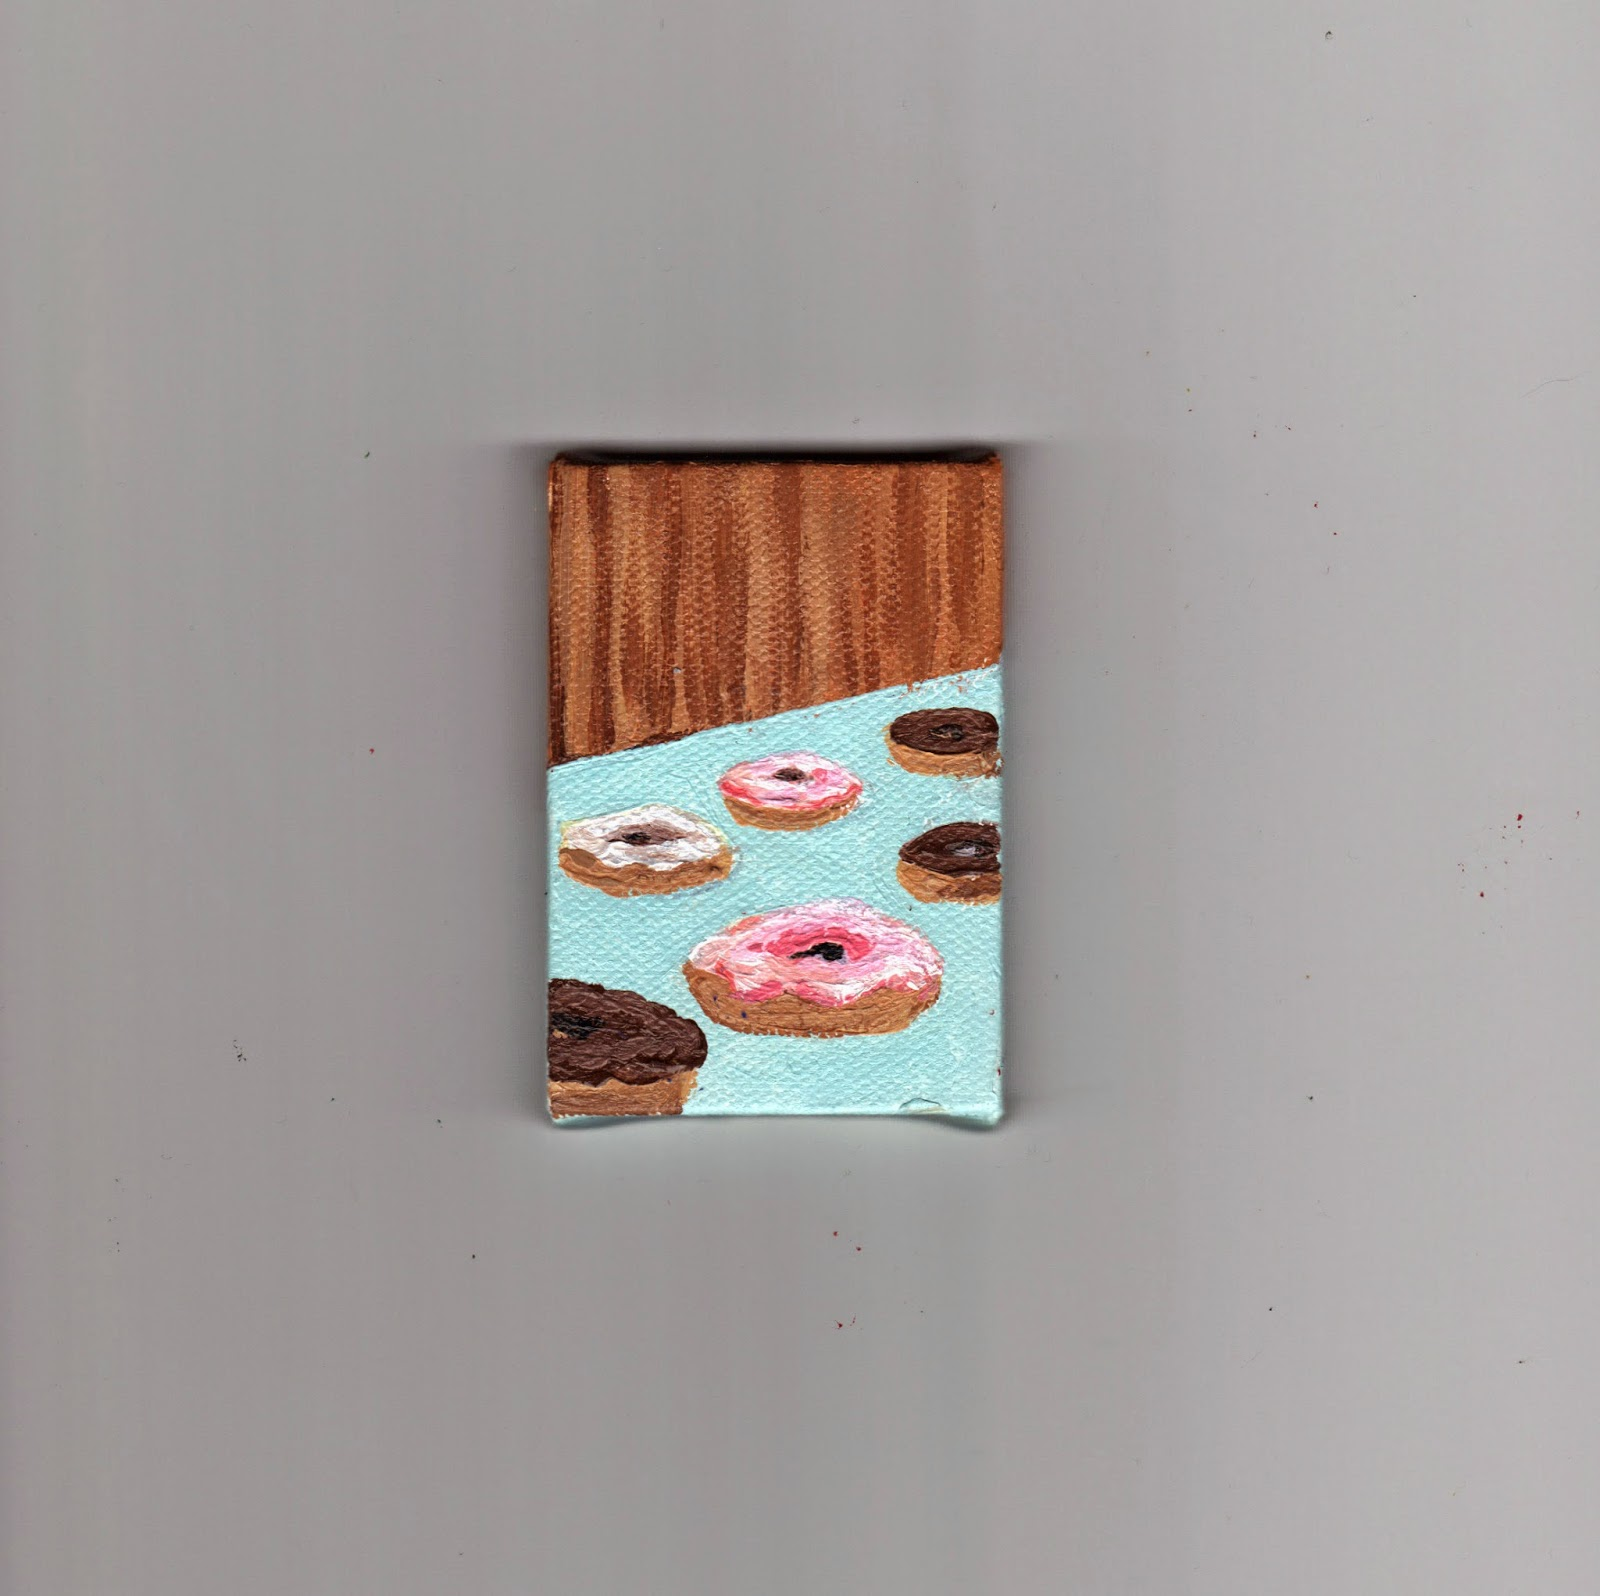 https://www.etsy.com/listing/170279931/mini-acrylic-painting-donuts-twin-peaks?ref=shop_home_active_23